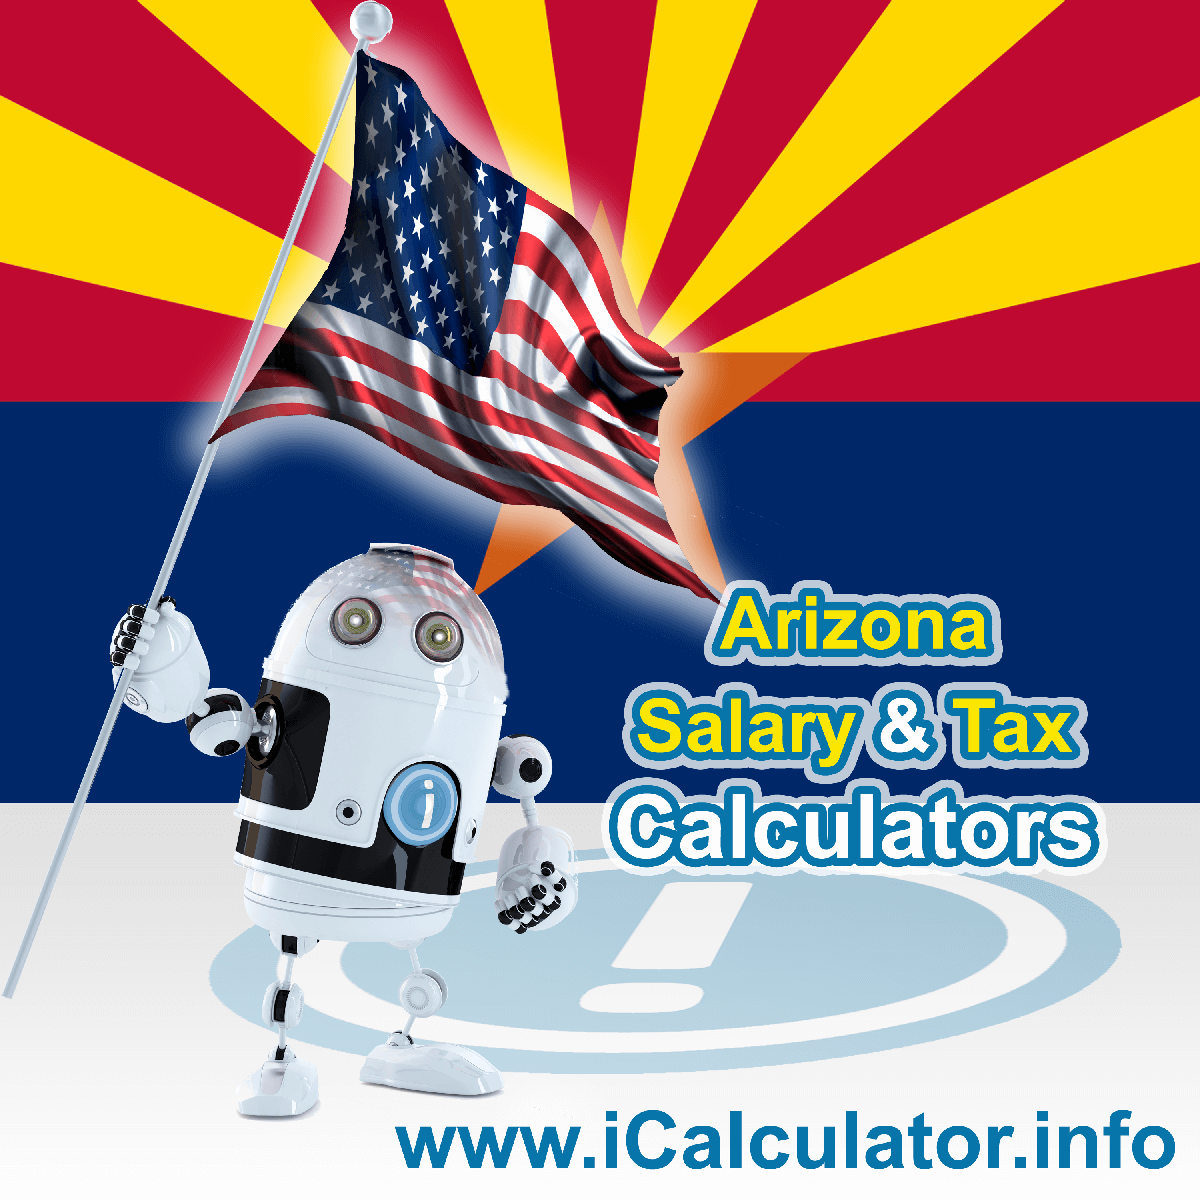 Arizona Salary Calculator 2019 | iCalculator | The Arizona Salary Calculator allows you to quickly calculate your salary after tax including Arizona State Tax, Federal State Tax, Medicare Deductions, Social Security, Capital Gains and other income tax and salary deductions complete with supporting Arizona state tax tables